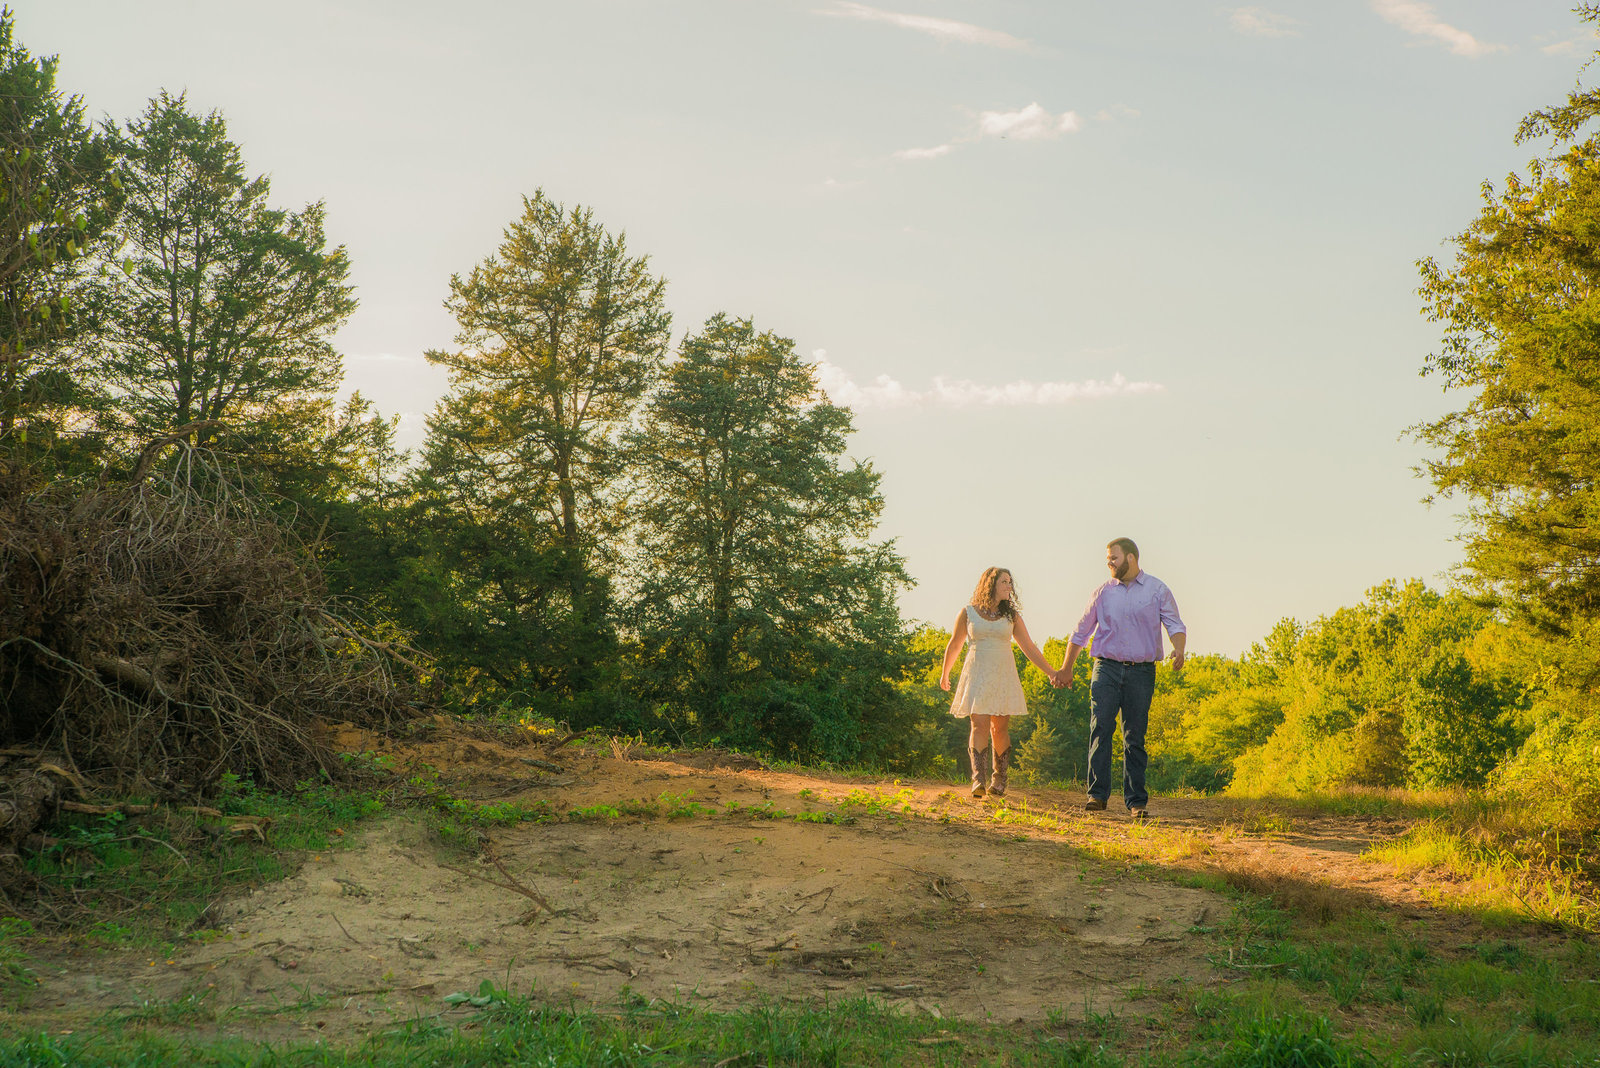 NJ_Rustic_Engagement_Photography042